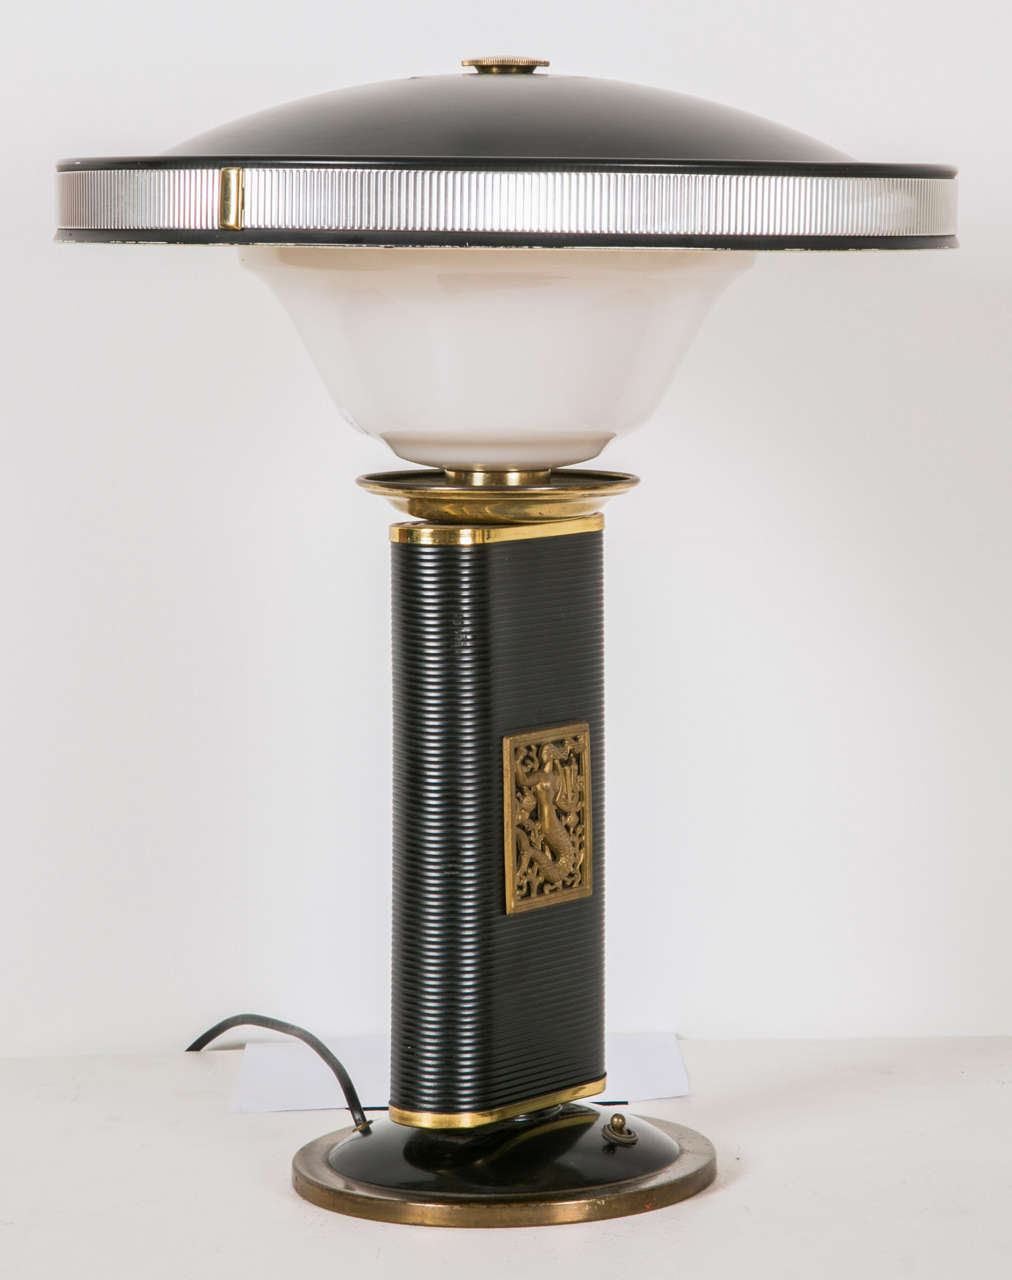 1945-1950s Table Lamp 'Sirène-Eileen Gray' by Jumo 1